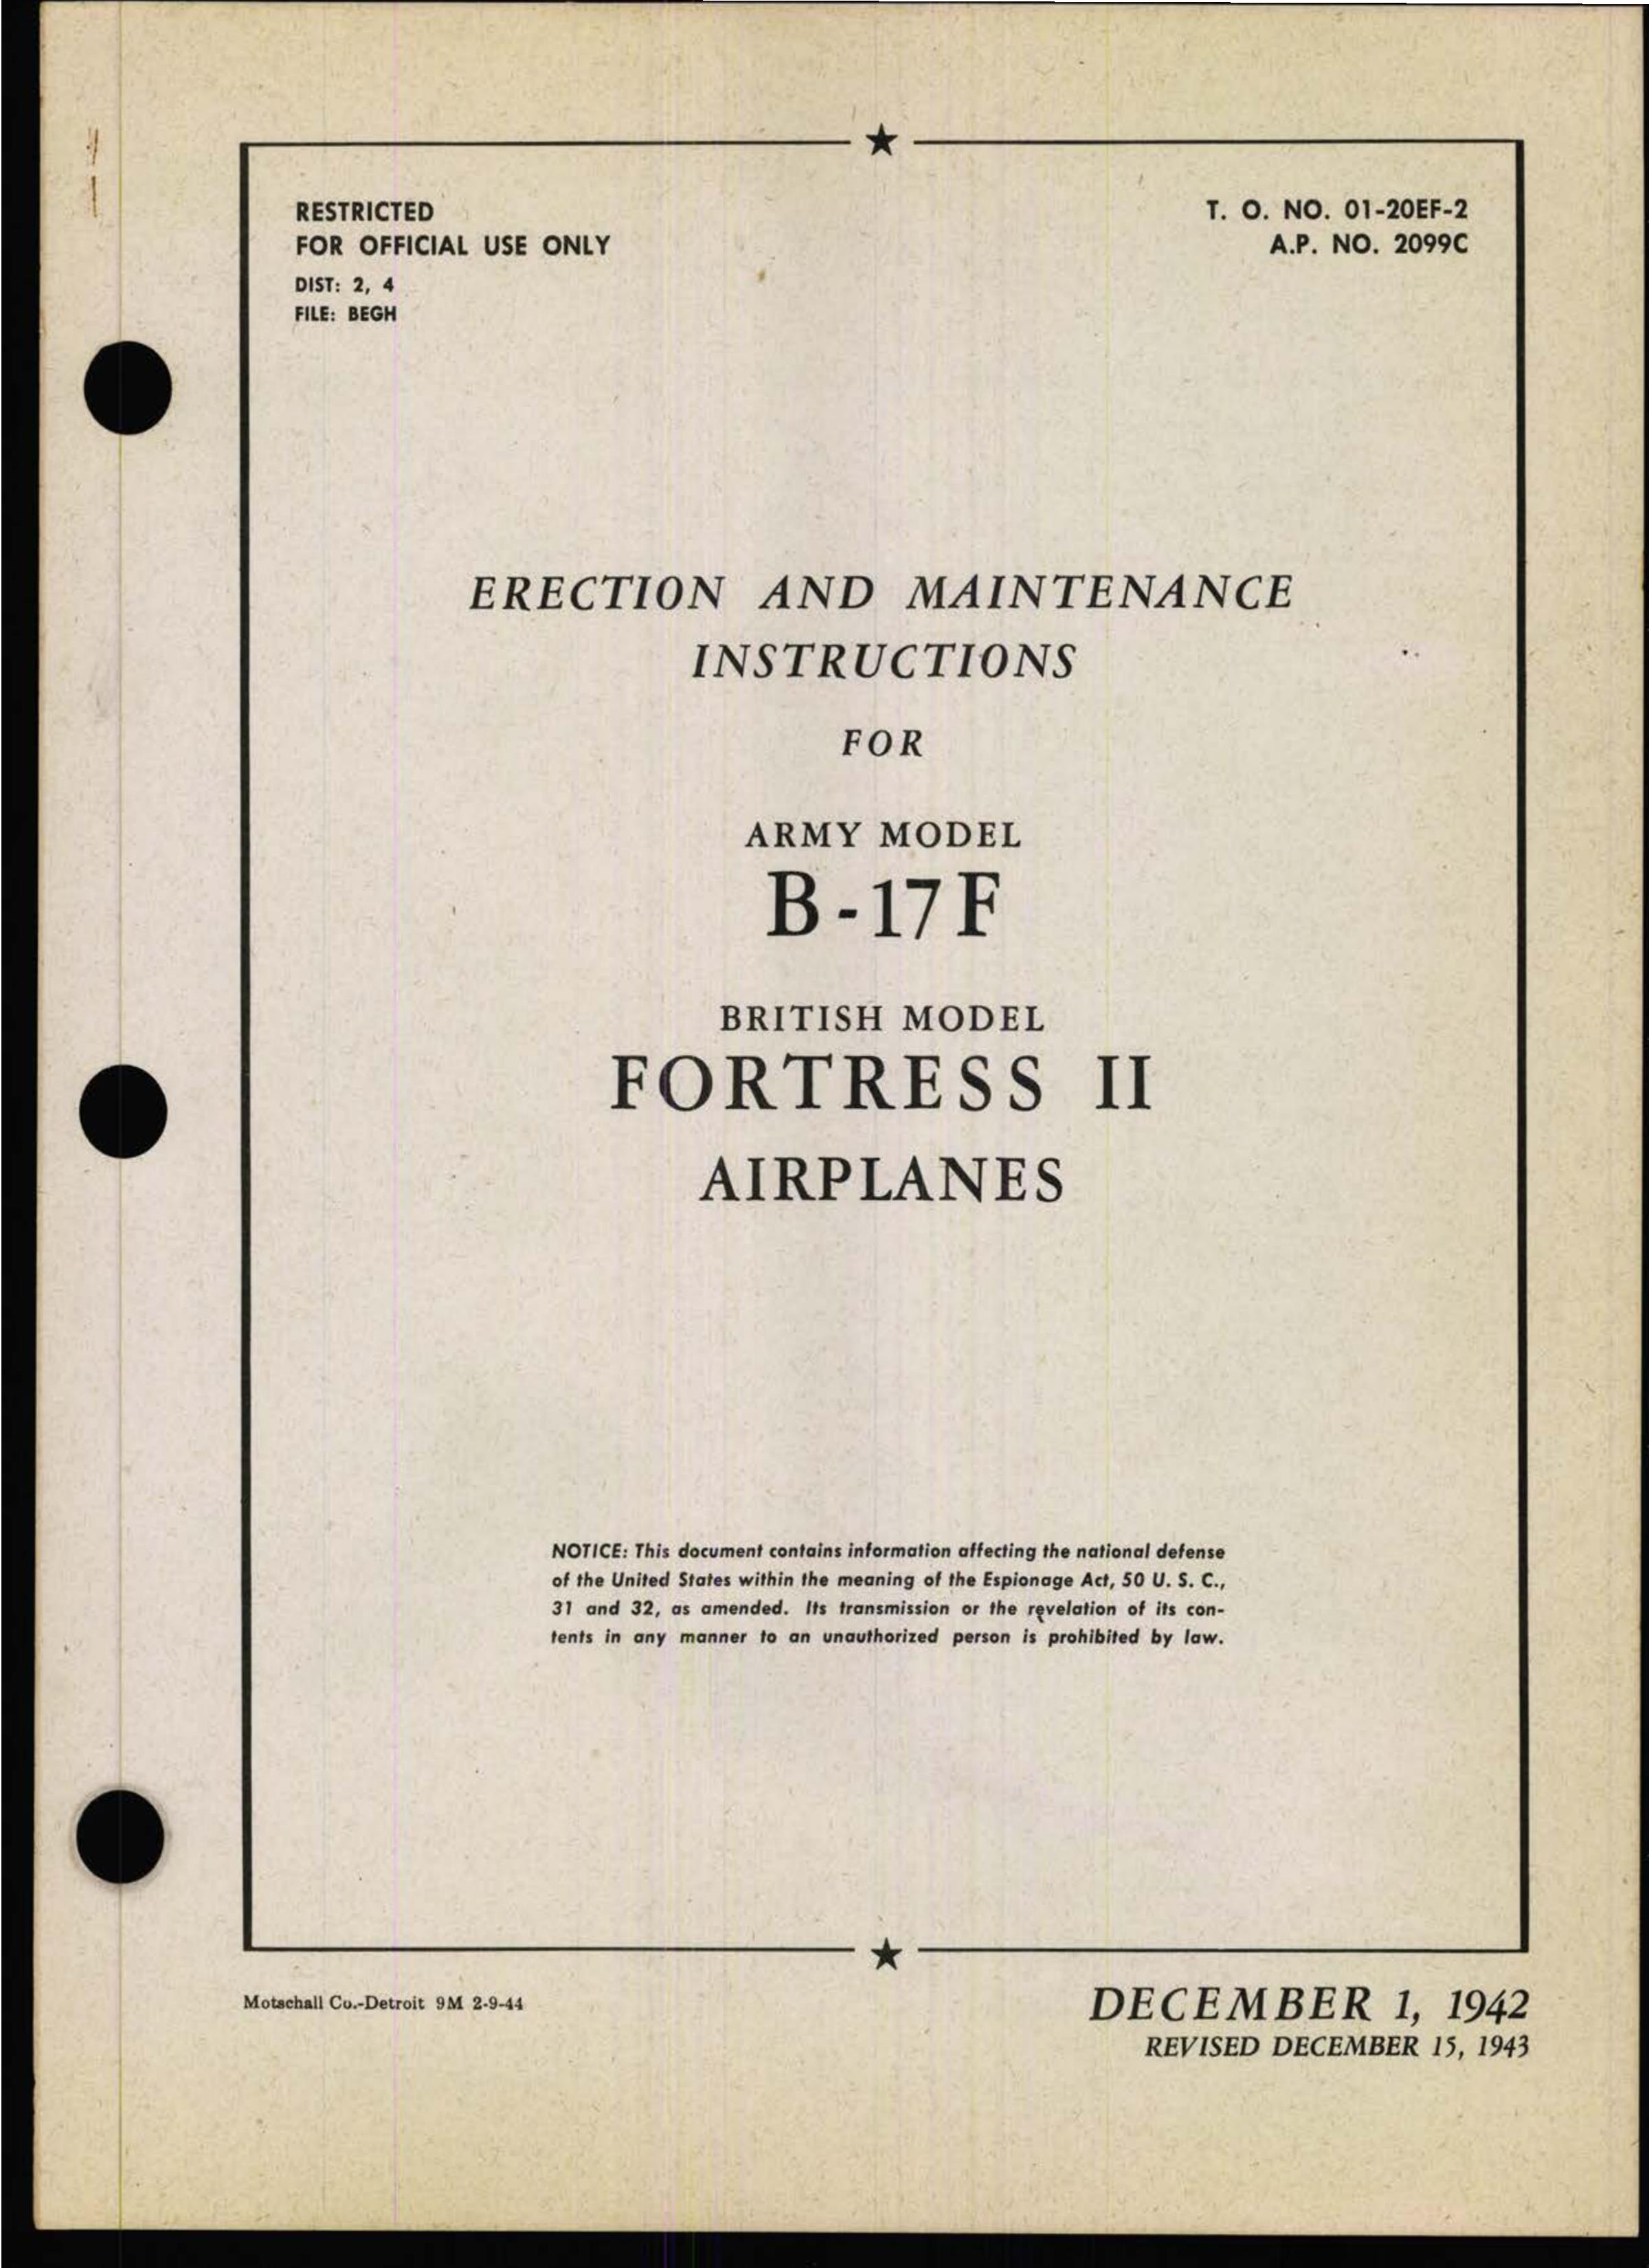 Sample page 1 from AirCorps Library document: Erection & Maintenance - B-17F - Dec 1943